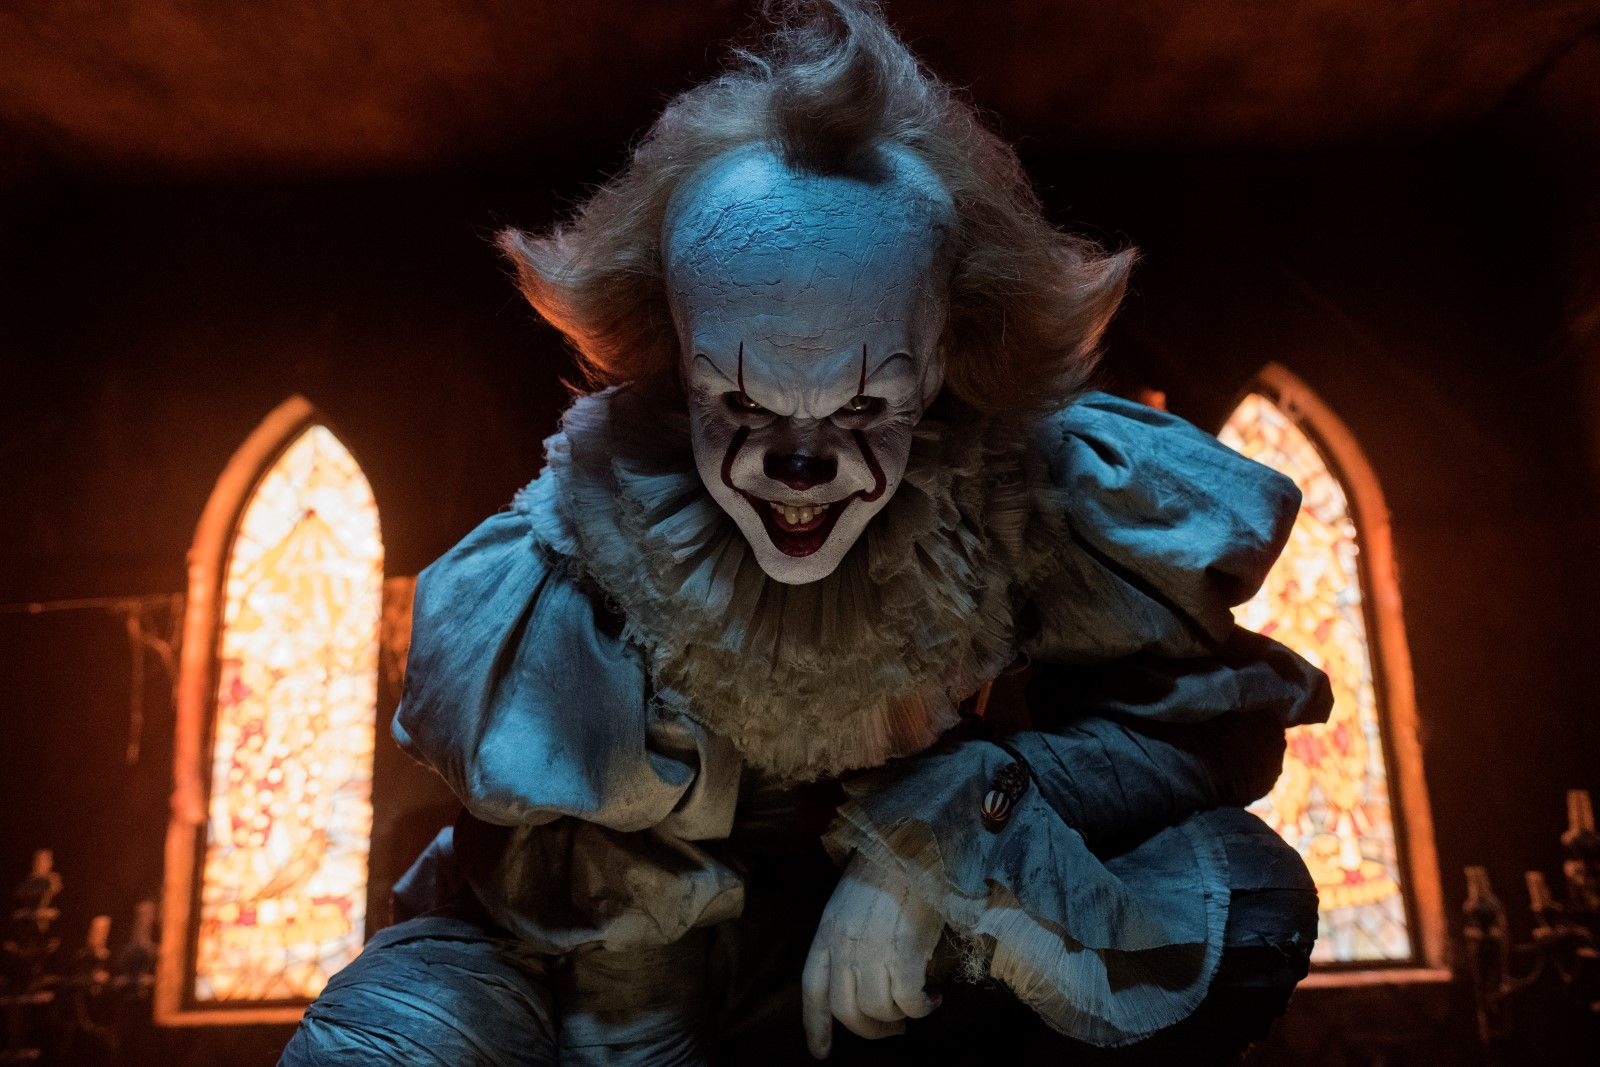 Ca Streaming Film Complet En Francais Pennywise The Clown Horror Films Pennywise The Dancing Clown